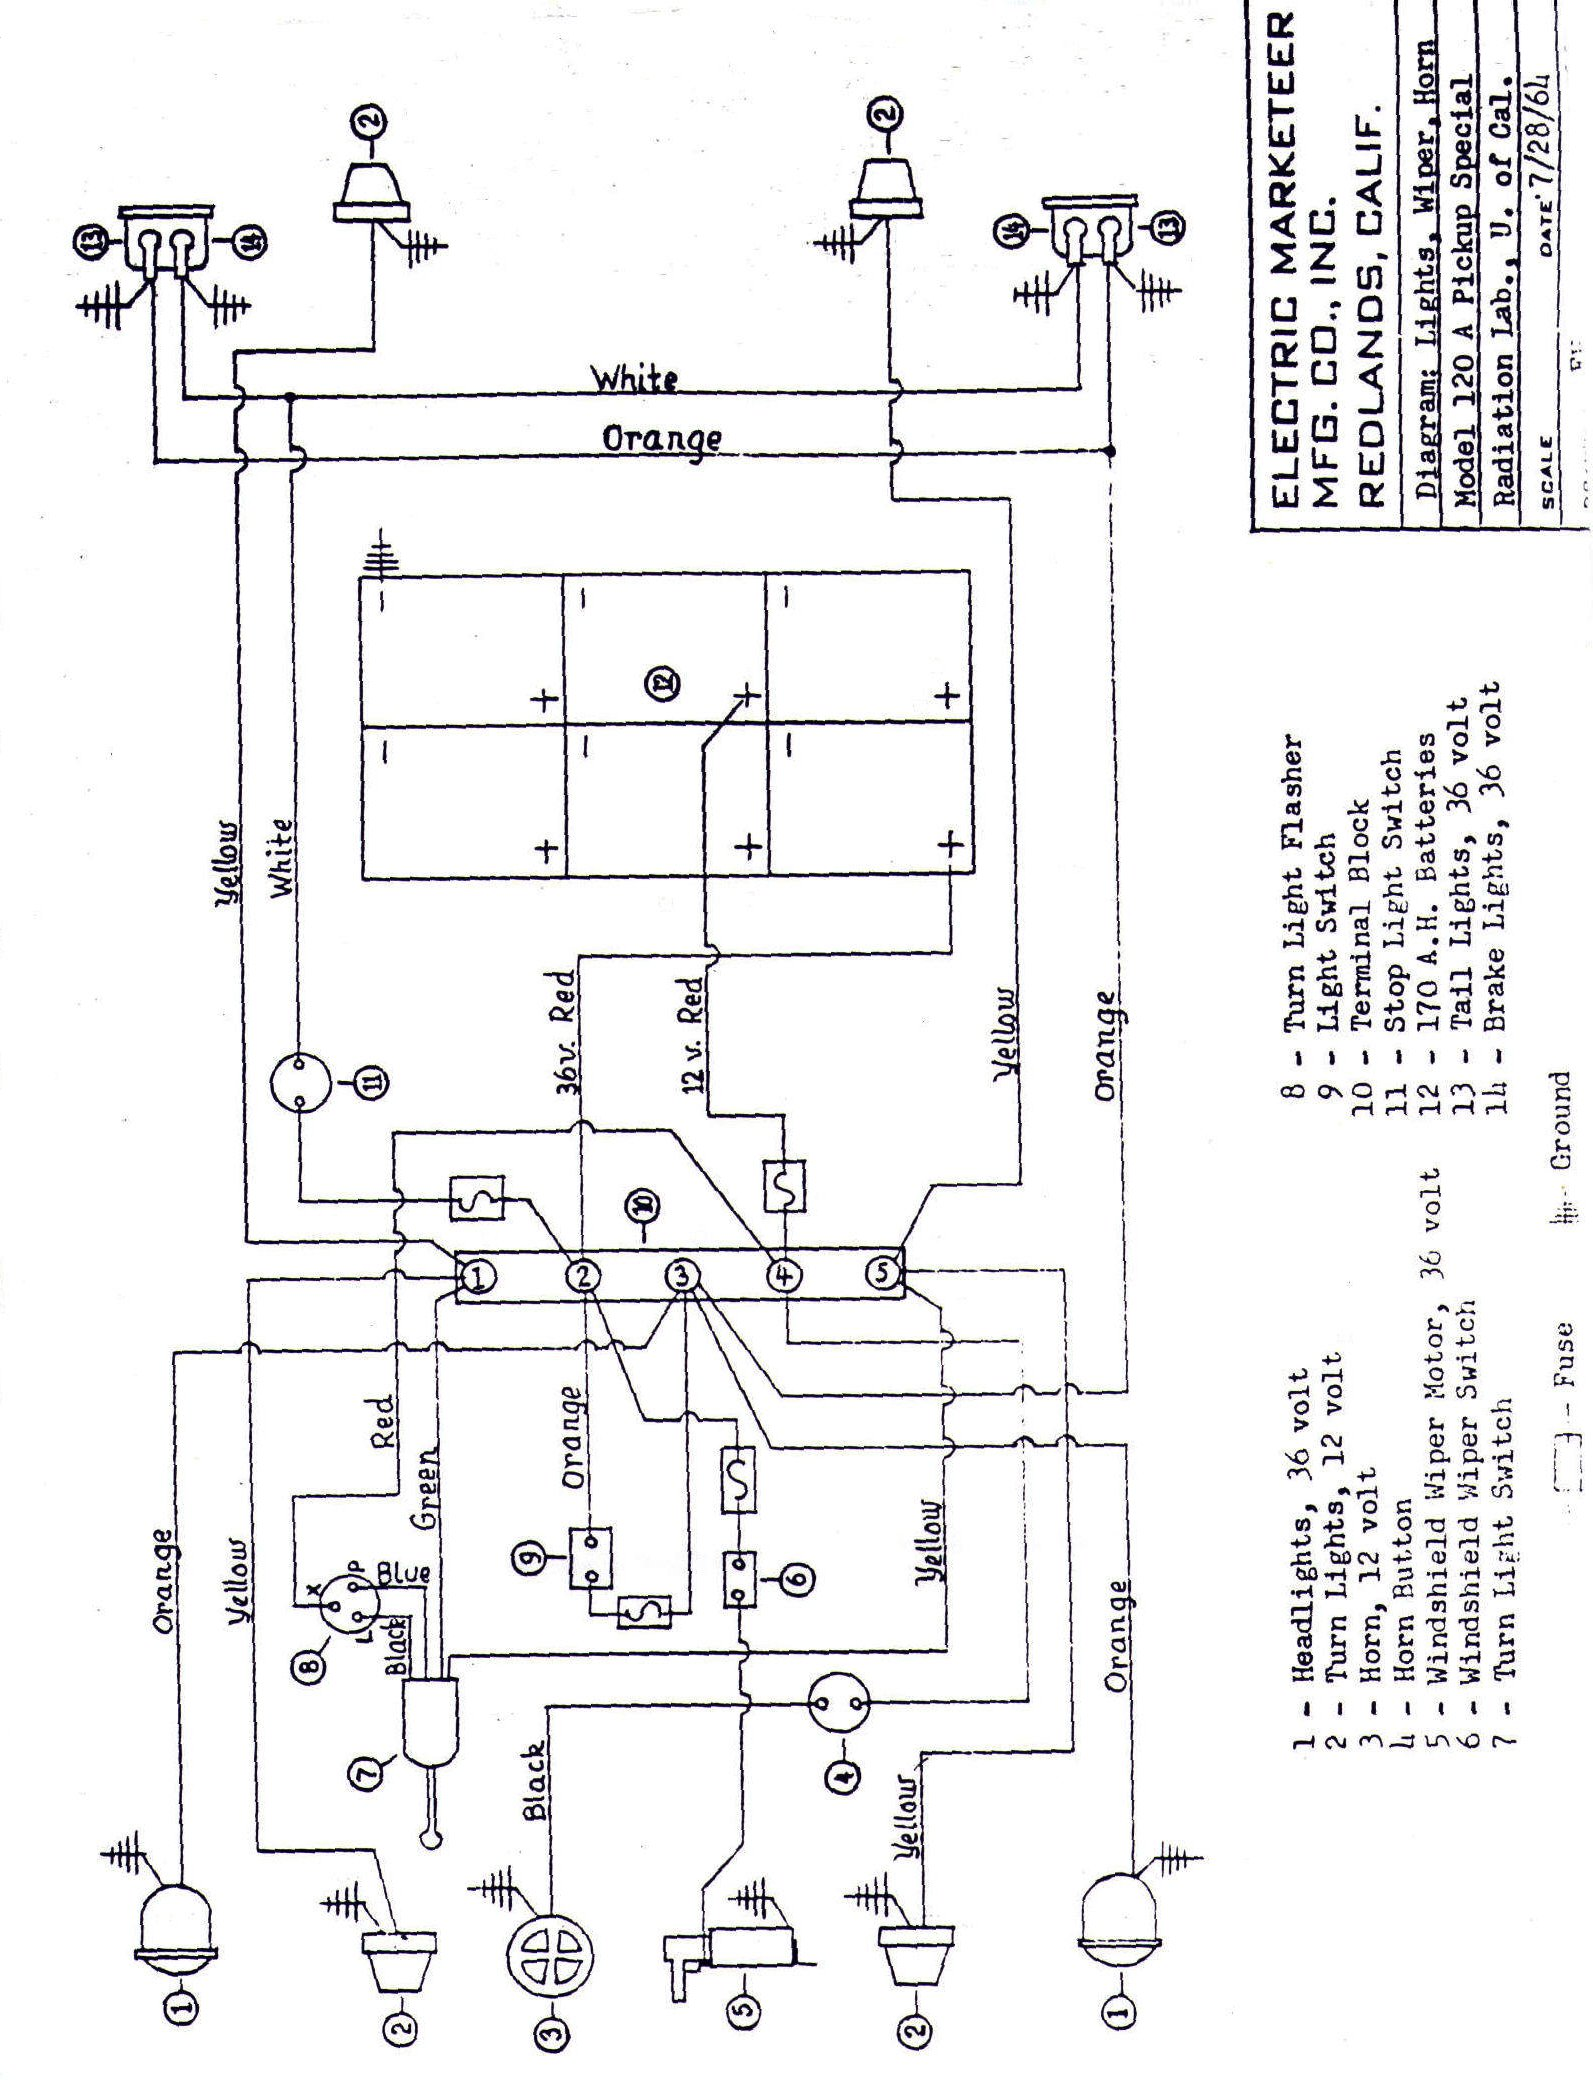 Cushman Minute Miser Wiring Diagram Cushman Minute Miser